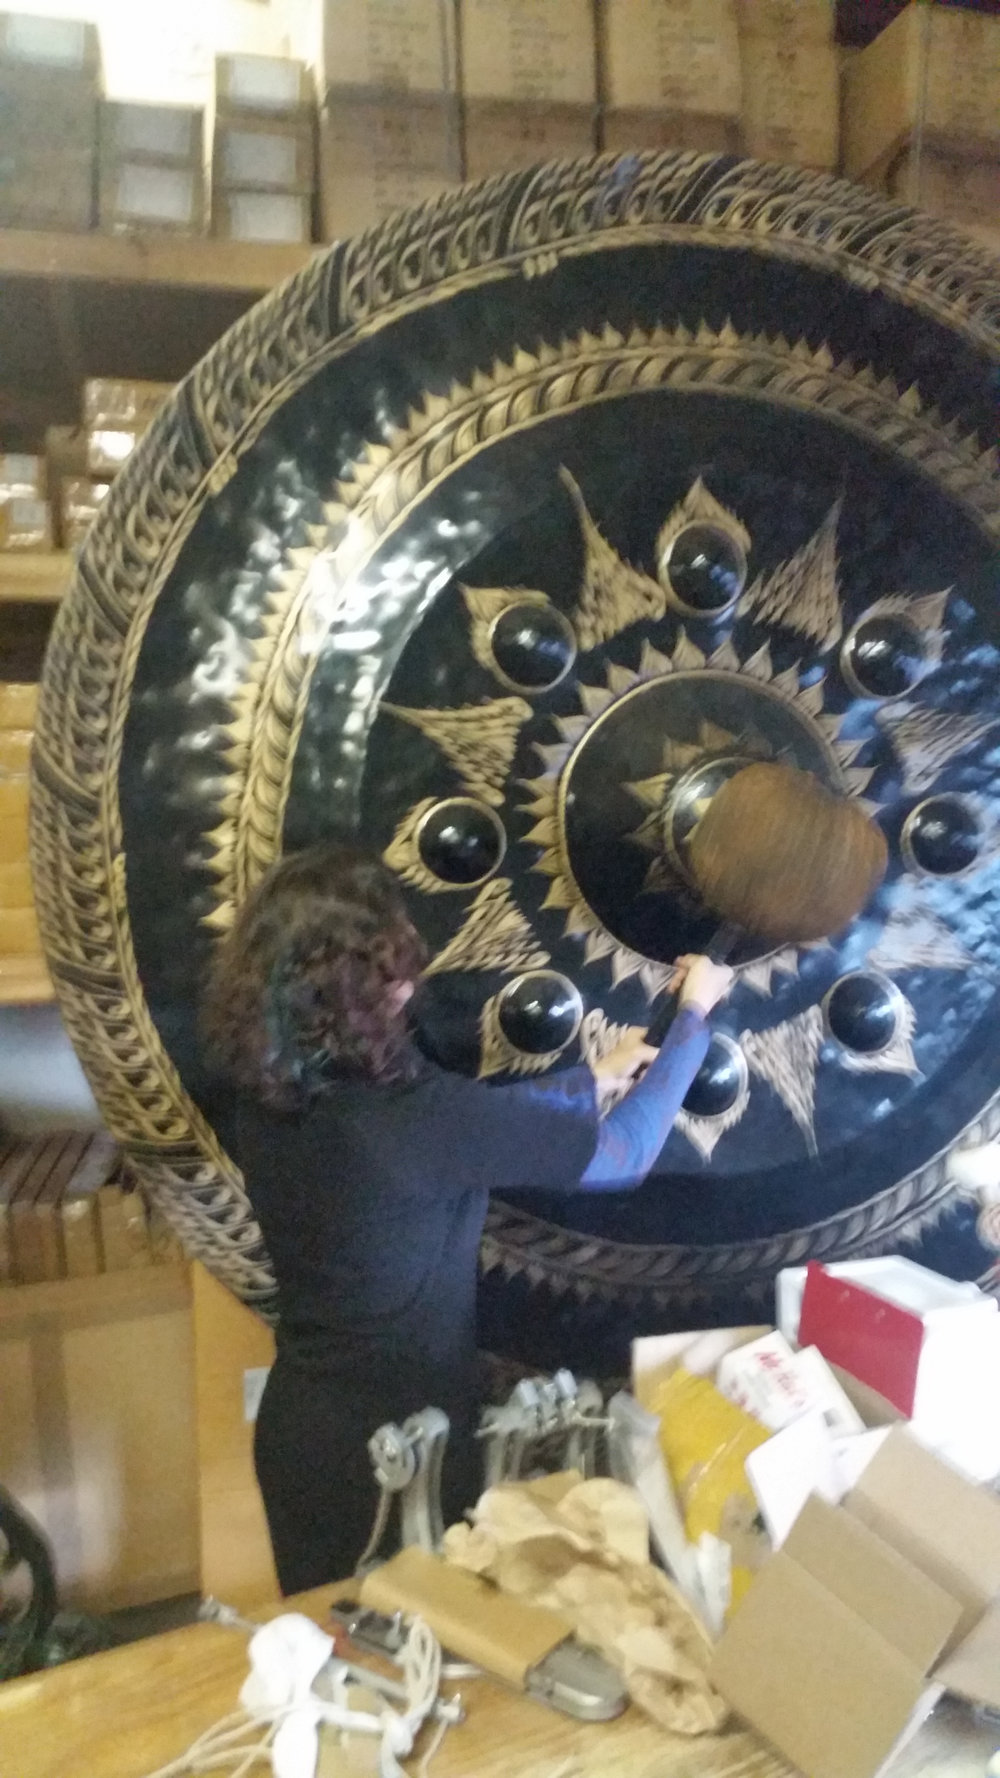 84 inch nipple gong in Gongs Unlimited warehouse